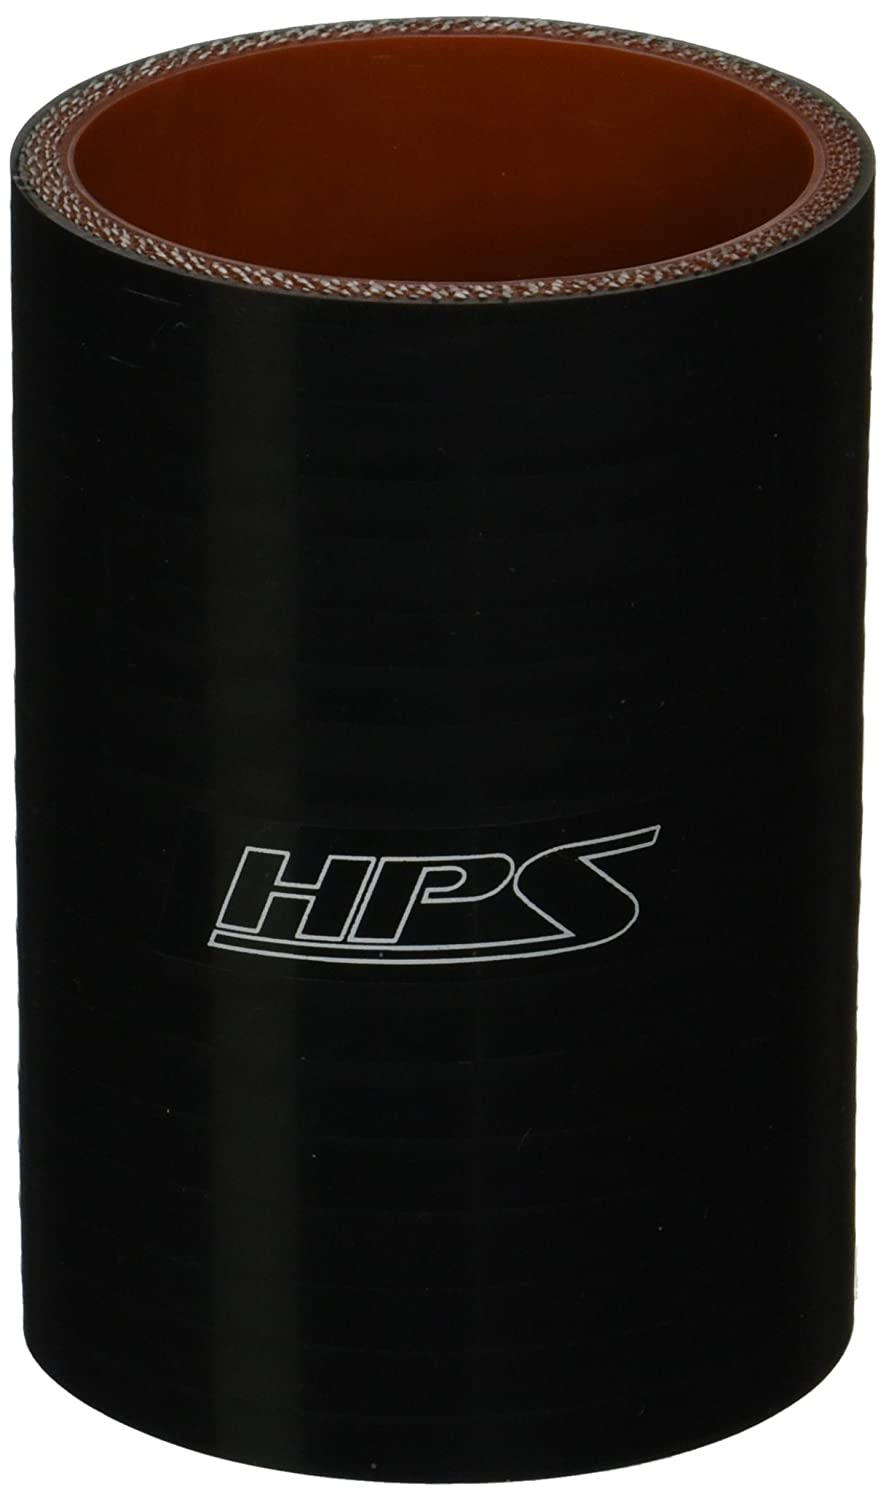 HPS HTSC-238-L4-BLK Silicone High Temperature 4-ply Reinforced Straight Coupler Hose Black 4 Length 2-3//8 ID HPS Silicone Hoses 85 PSI Maximum Pressure 2-3//8 ID 4 Length